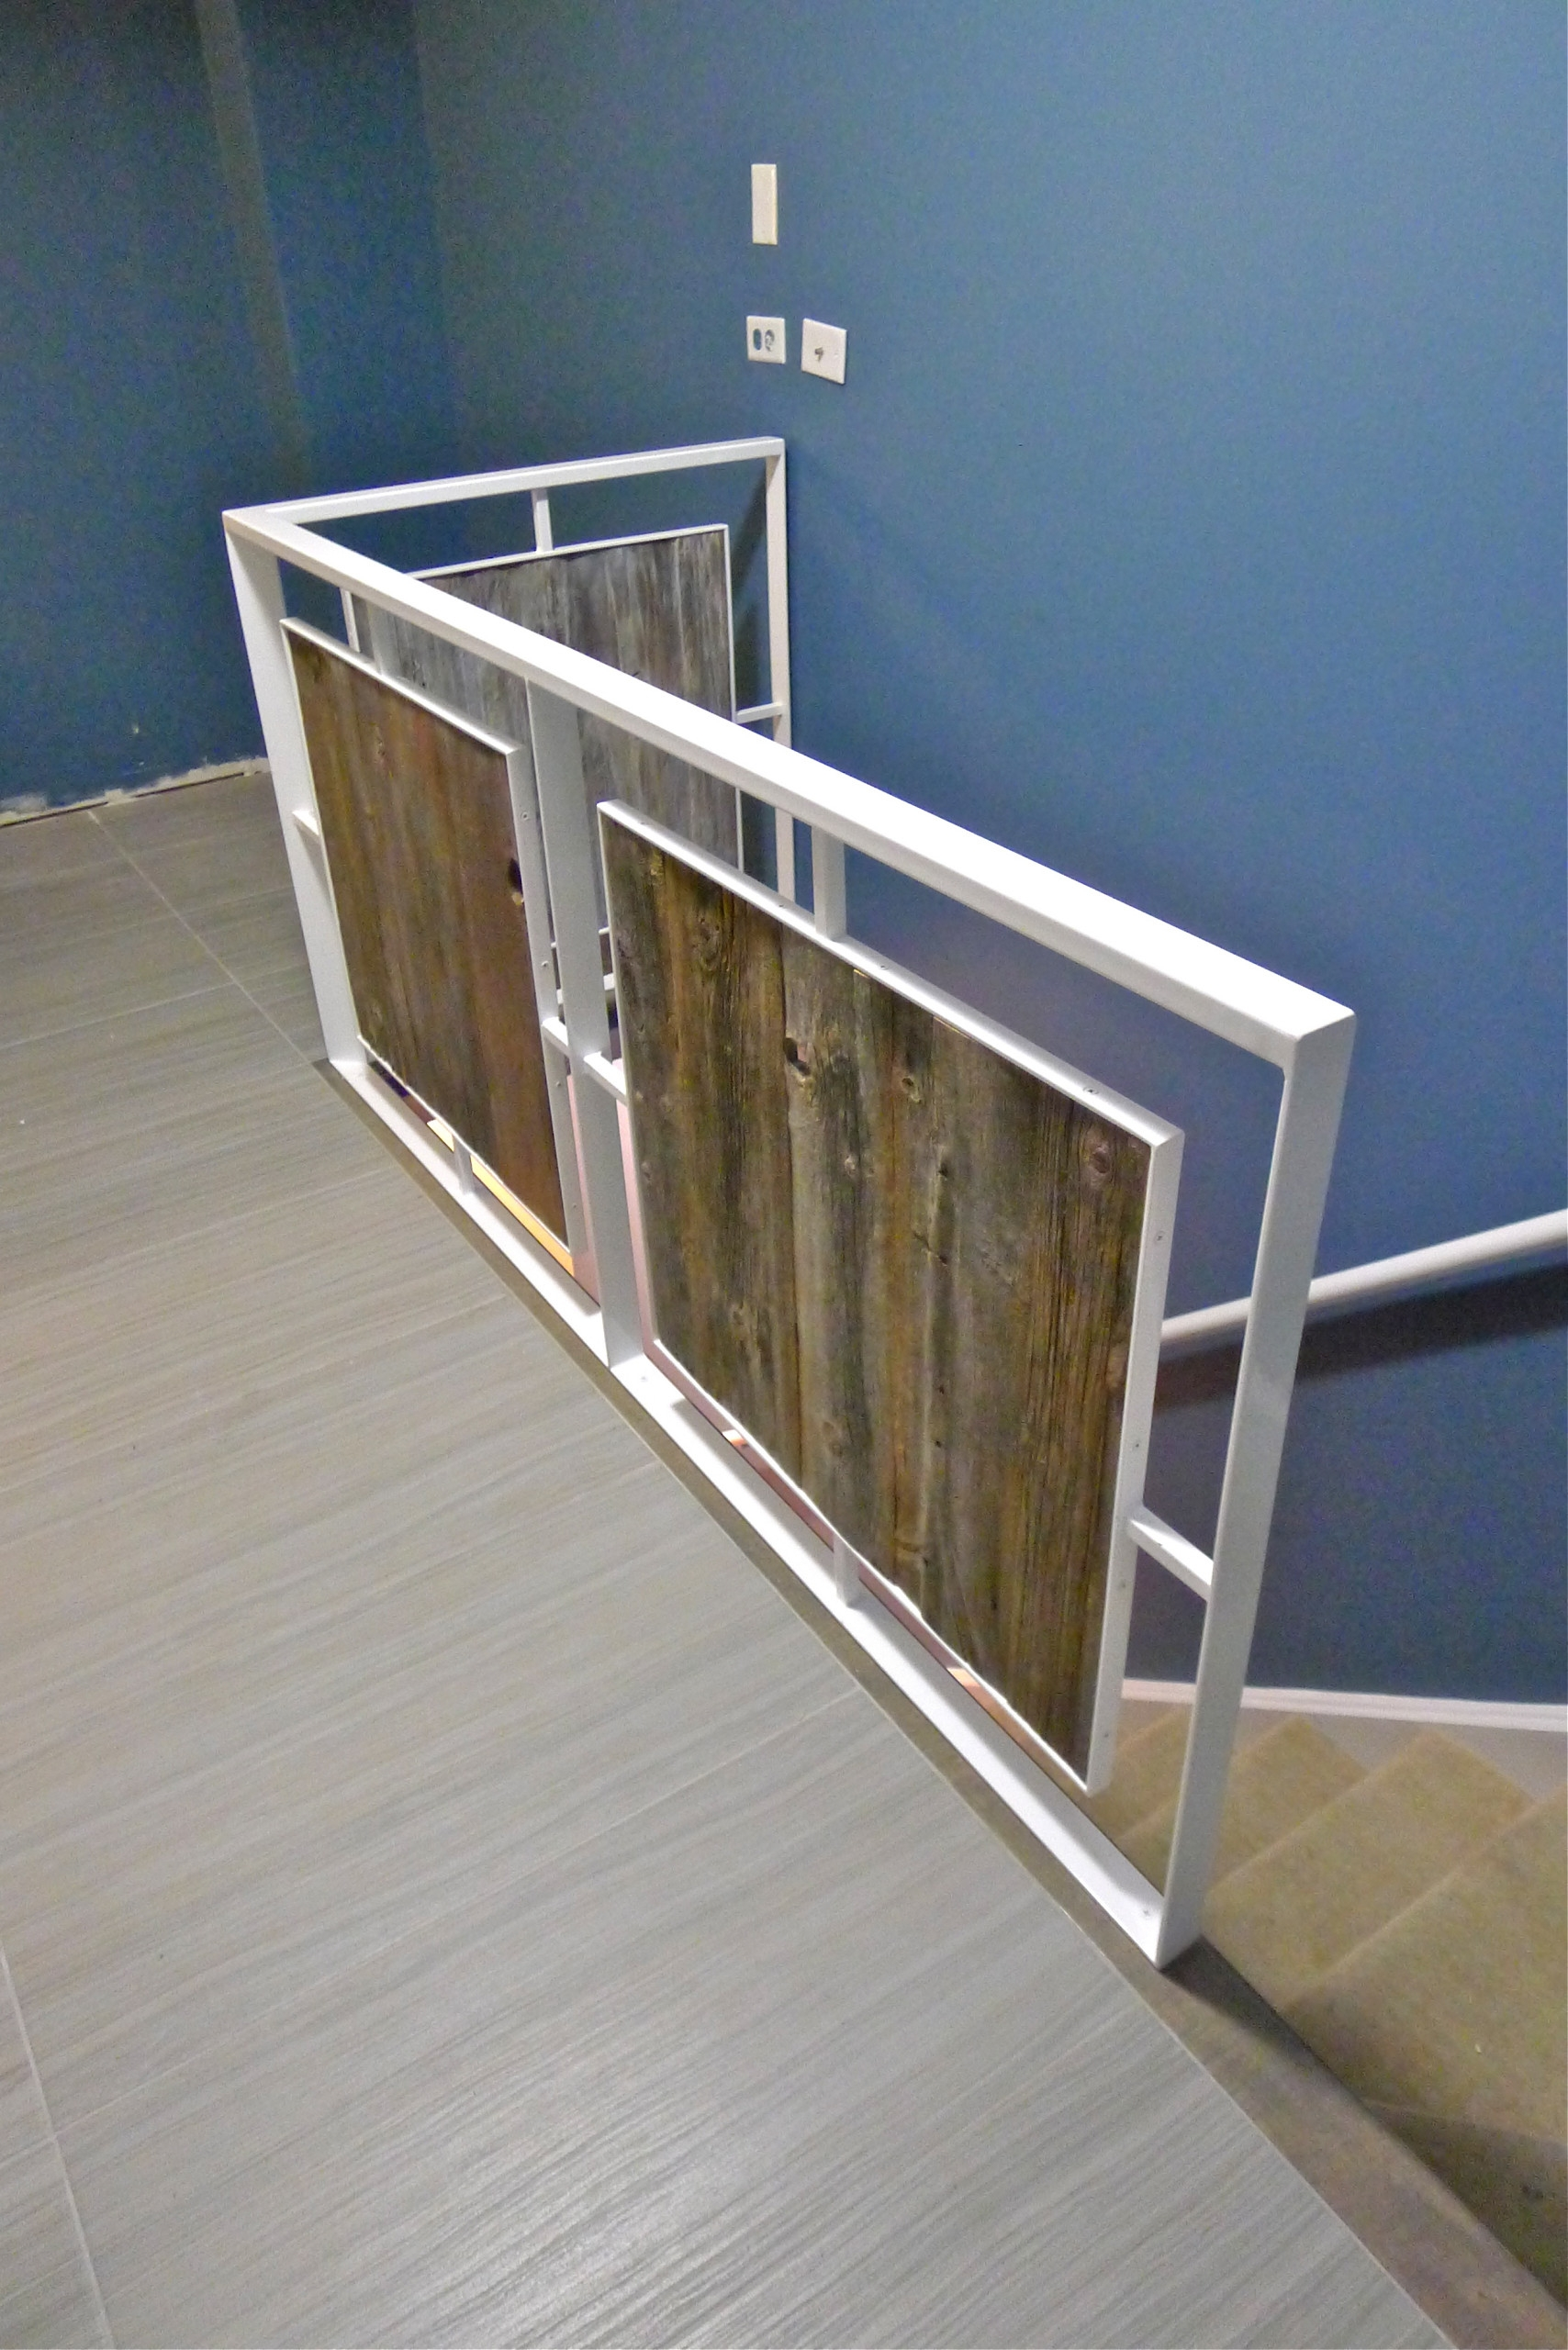 Steel Wood Stair Houzz | Staircase Design Steel And Wood | Angle Bar Stair | U Shaped Stair | Simple | Wooden Step | Open